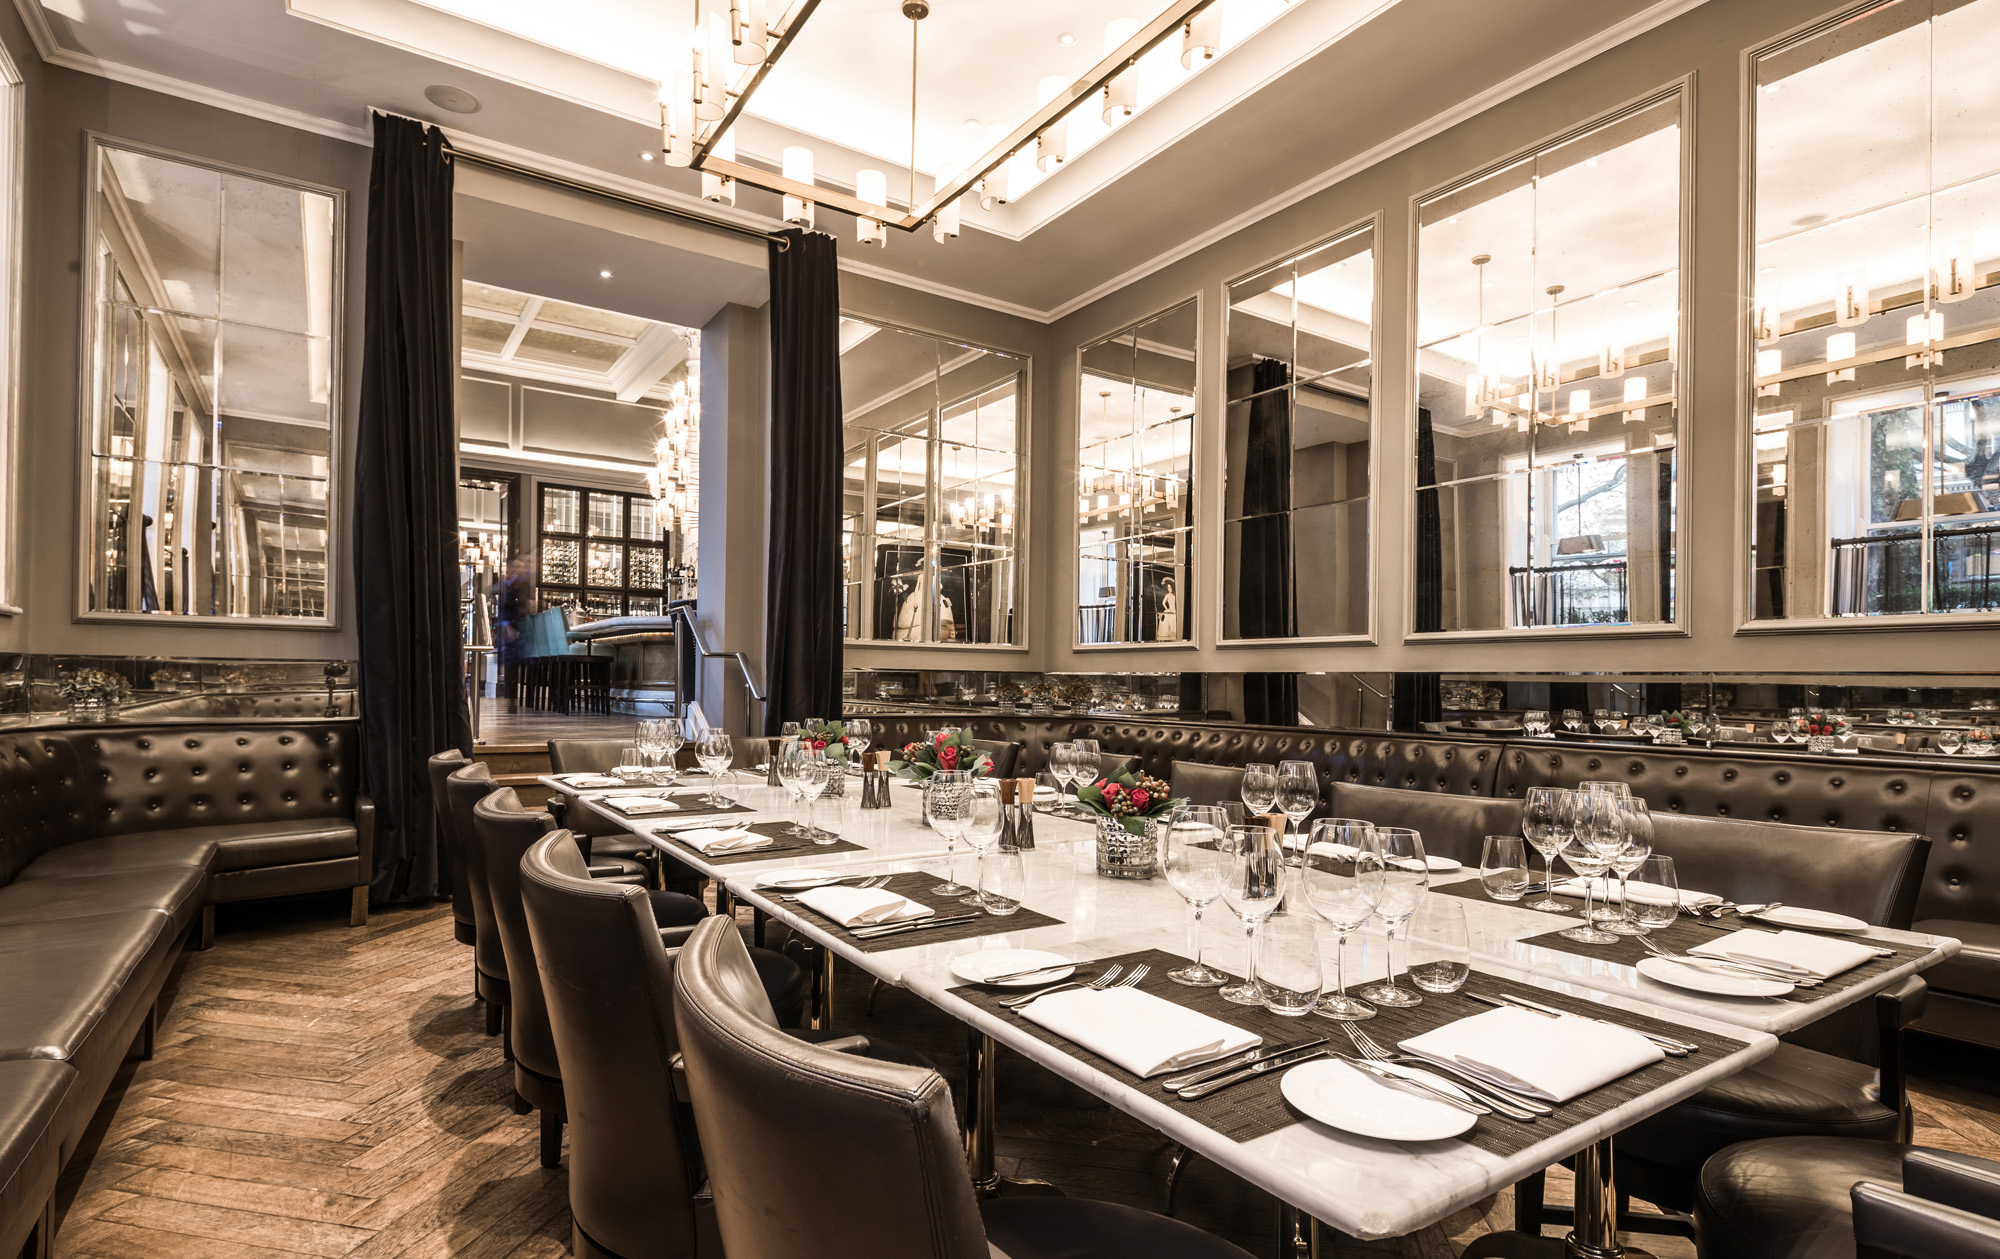 Corinthia Hotel venue hire events private dining corporate group bookings